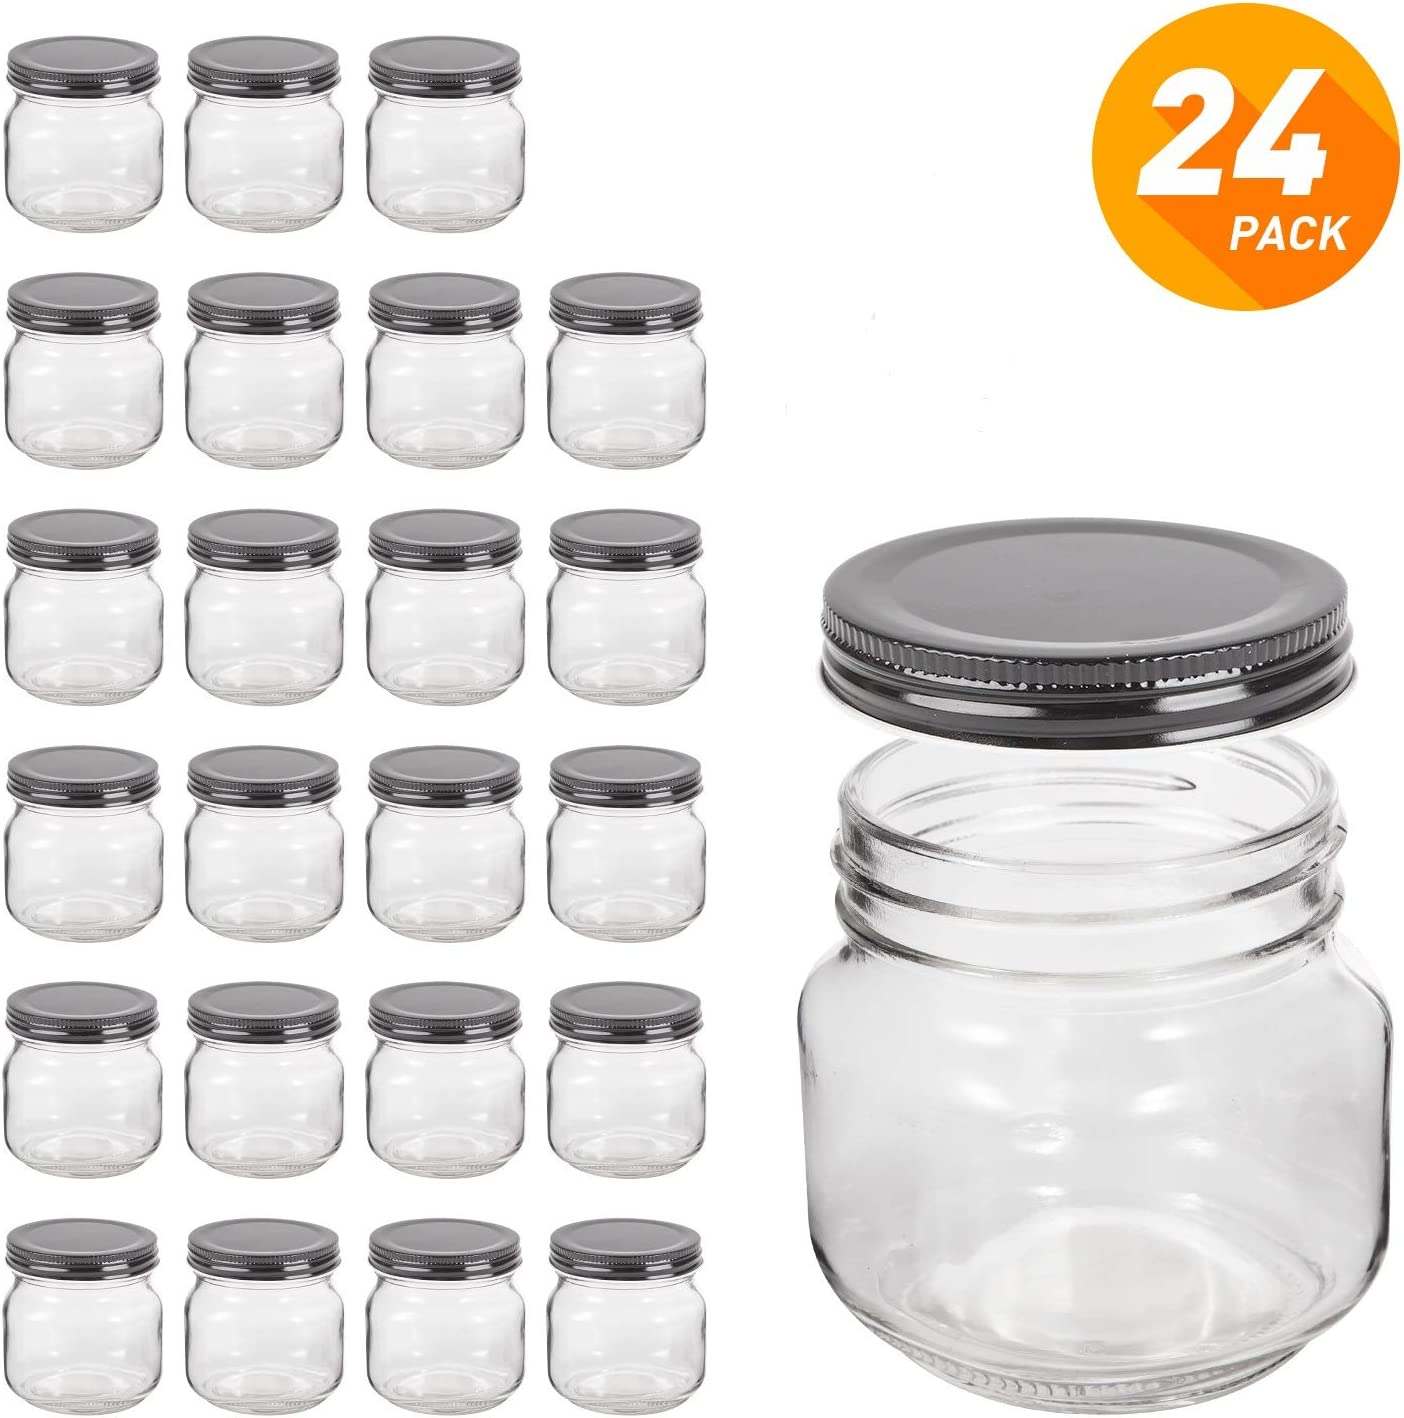 QAPPDA Mason Jars,Glass Jars With Lids 8 oz,Canning Jars For Pickles And Kitchen Storage,Wide Mouth Spice Jars With Black Lids For Honey,Caviar,Herb,Jelly,Jams,Set of 24